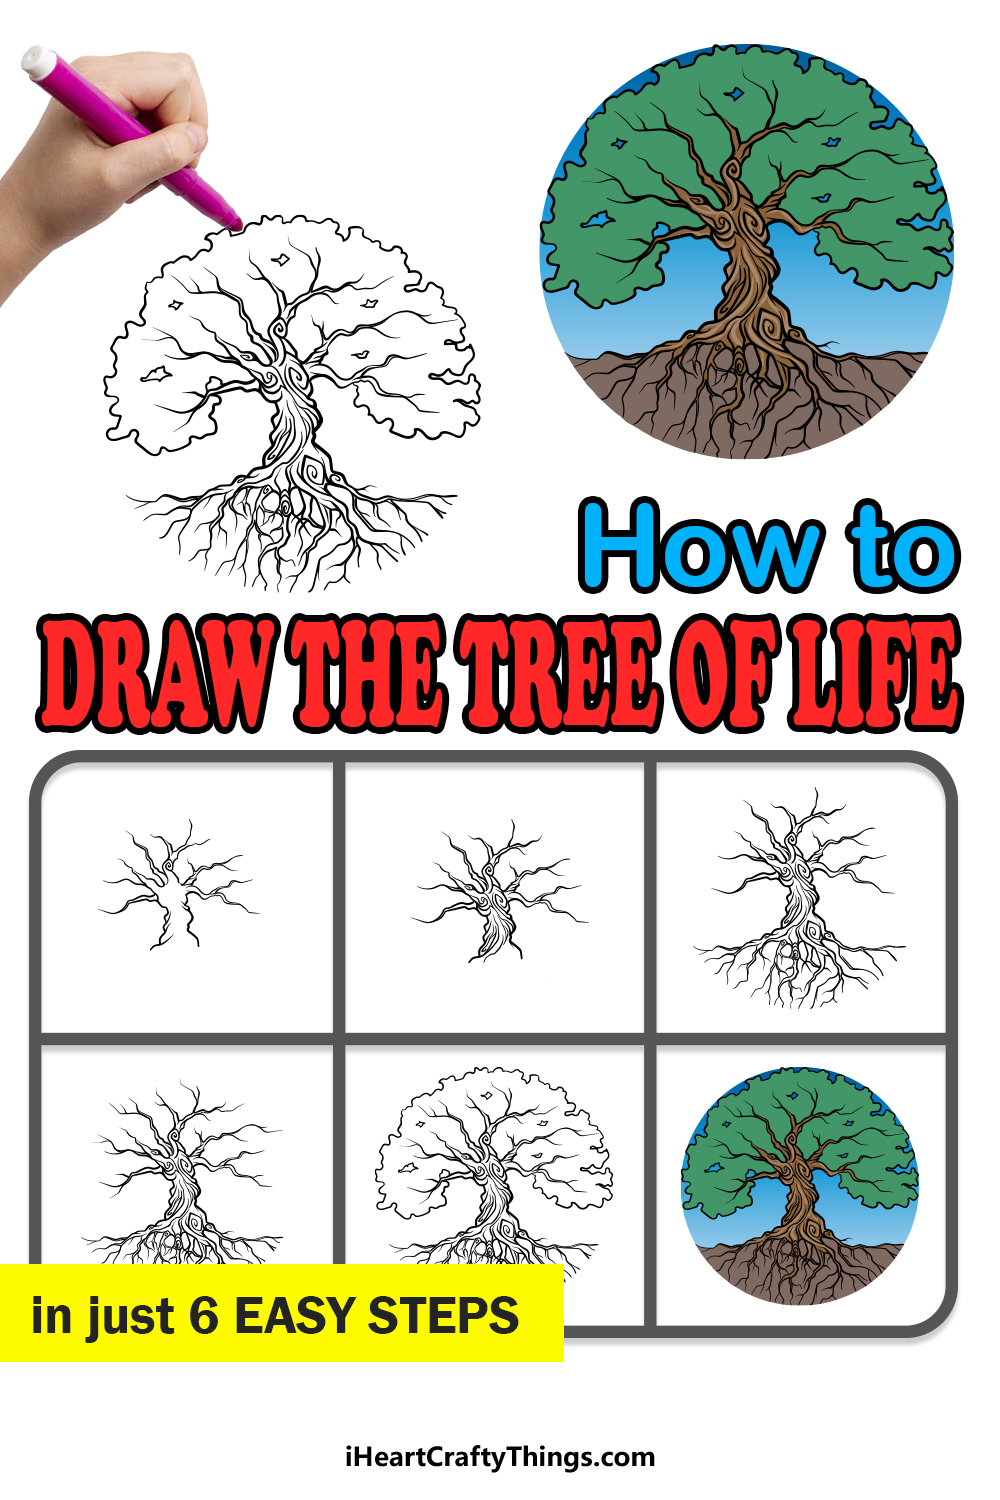 how to draw the tree of life in 6 easy steps